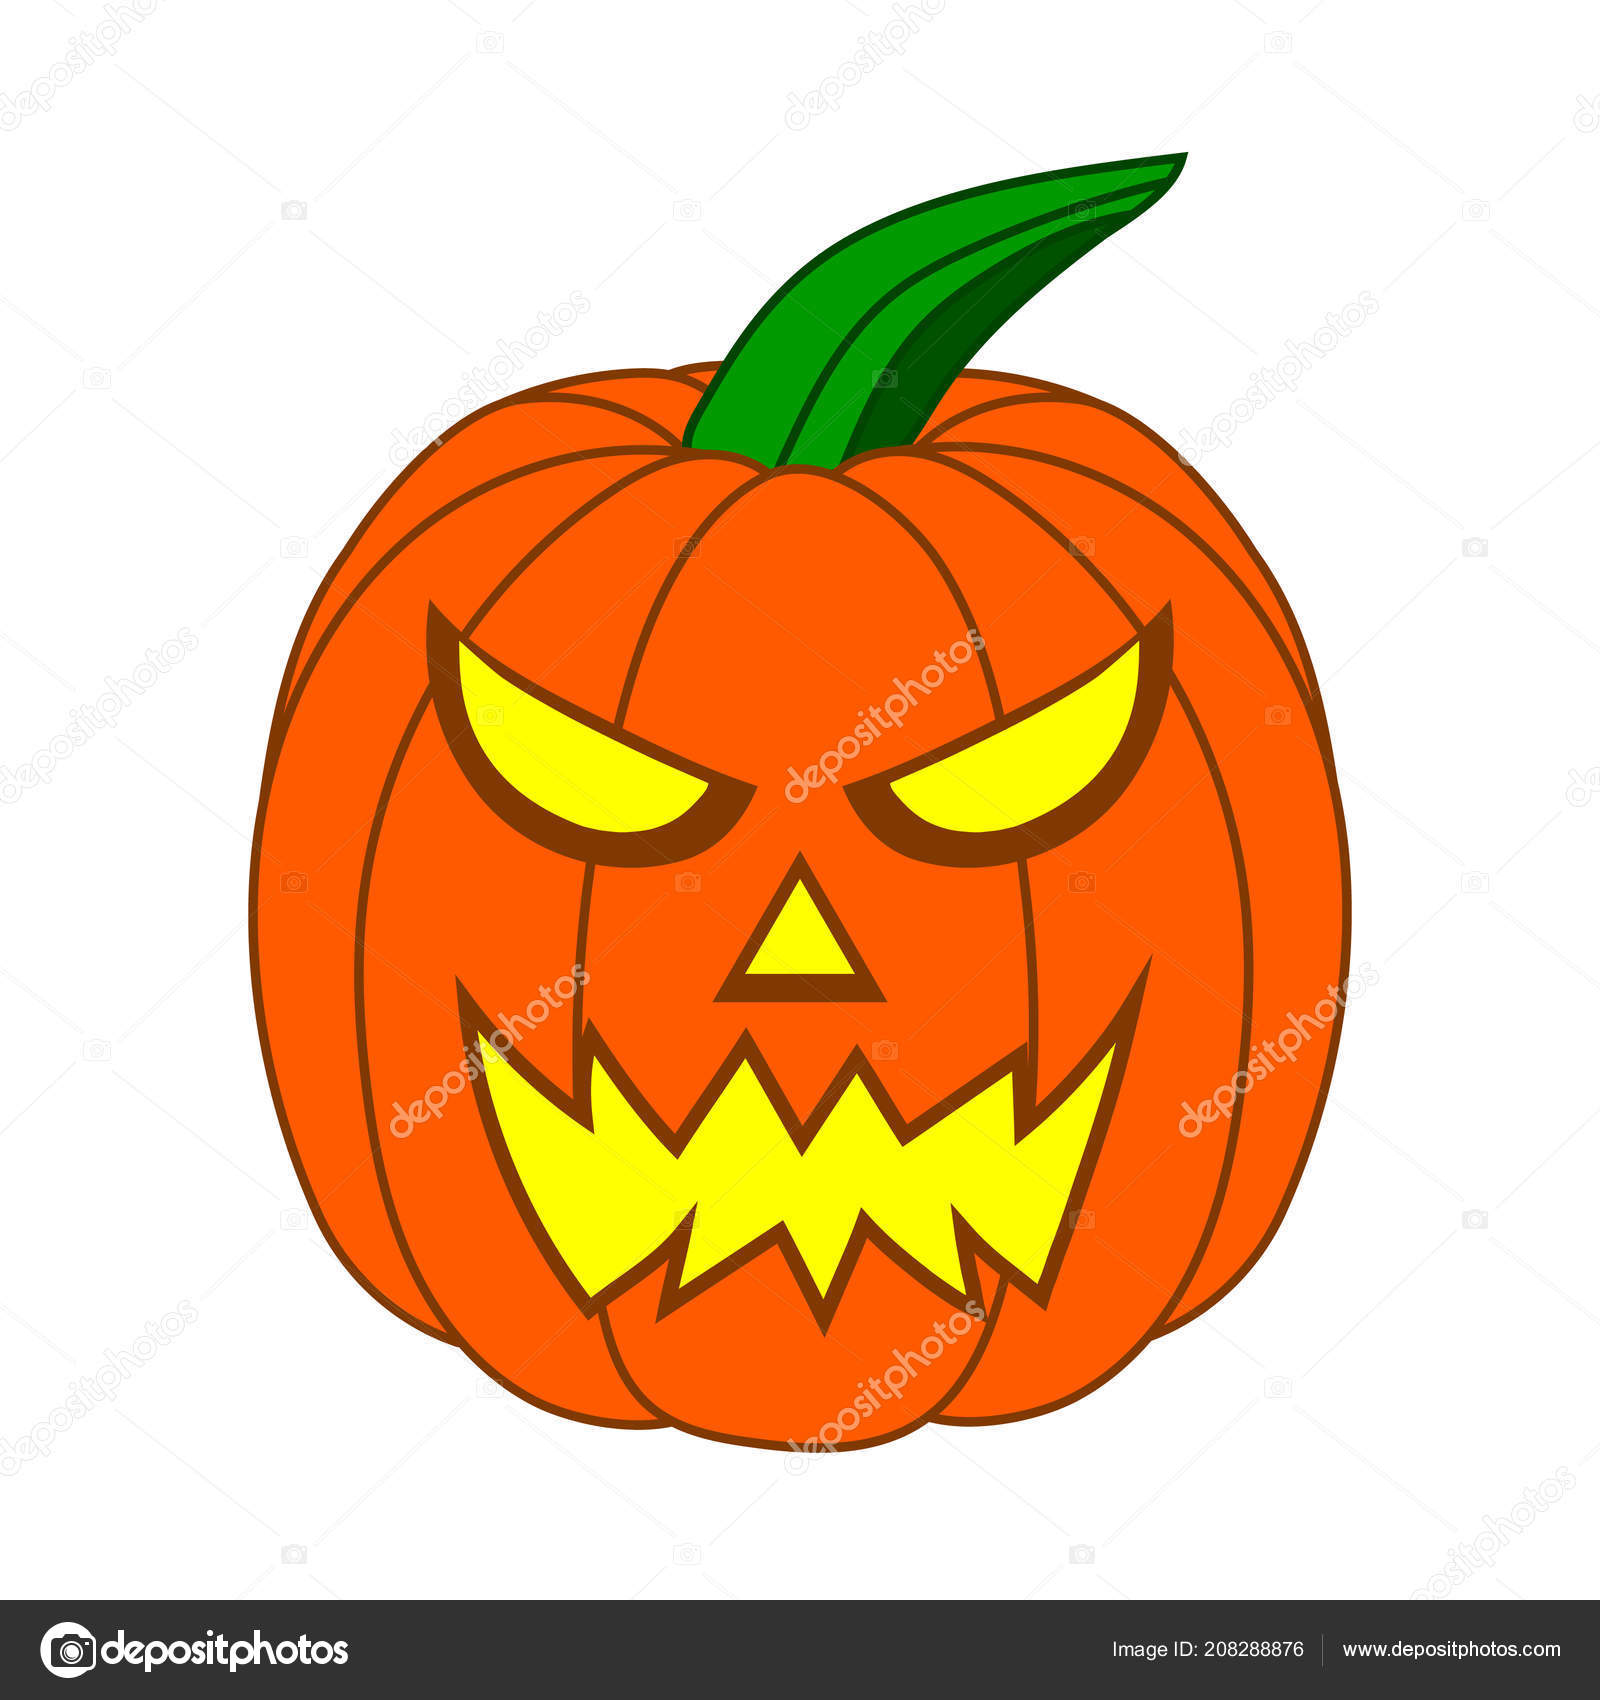 Halloween pumpkin head jack lantern made from plasticine. Scary Cartoon Halloween Pumpkin Funny Face Isolated White Background Your Stock Vector Image By C Alody 208288876